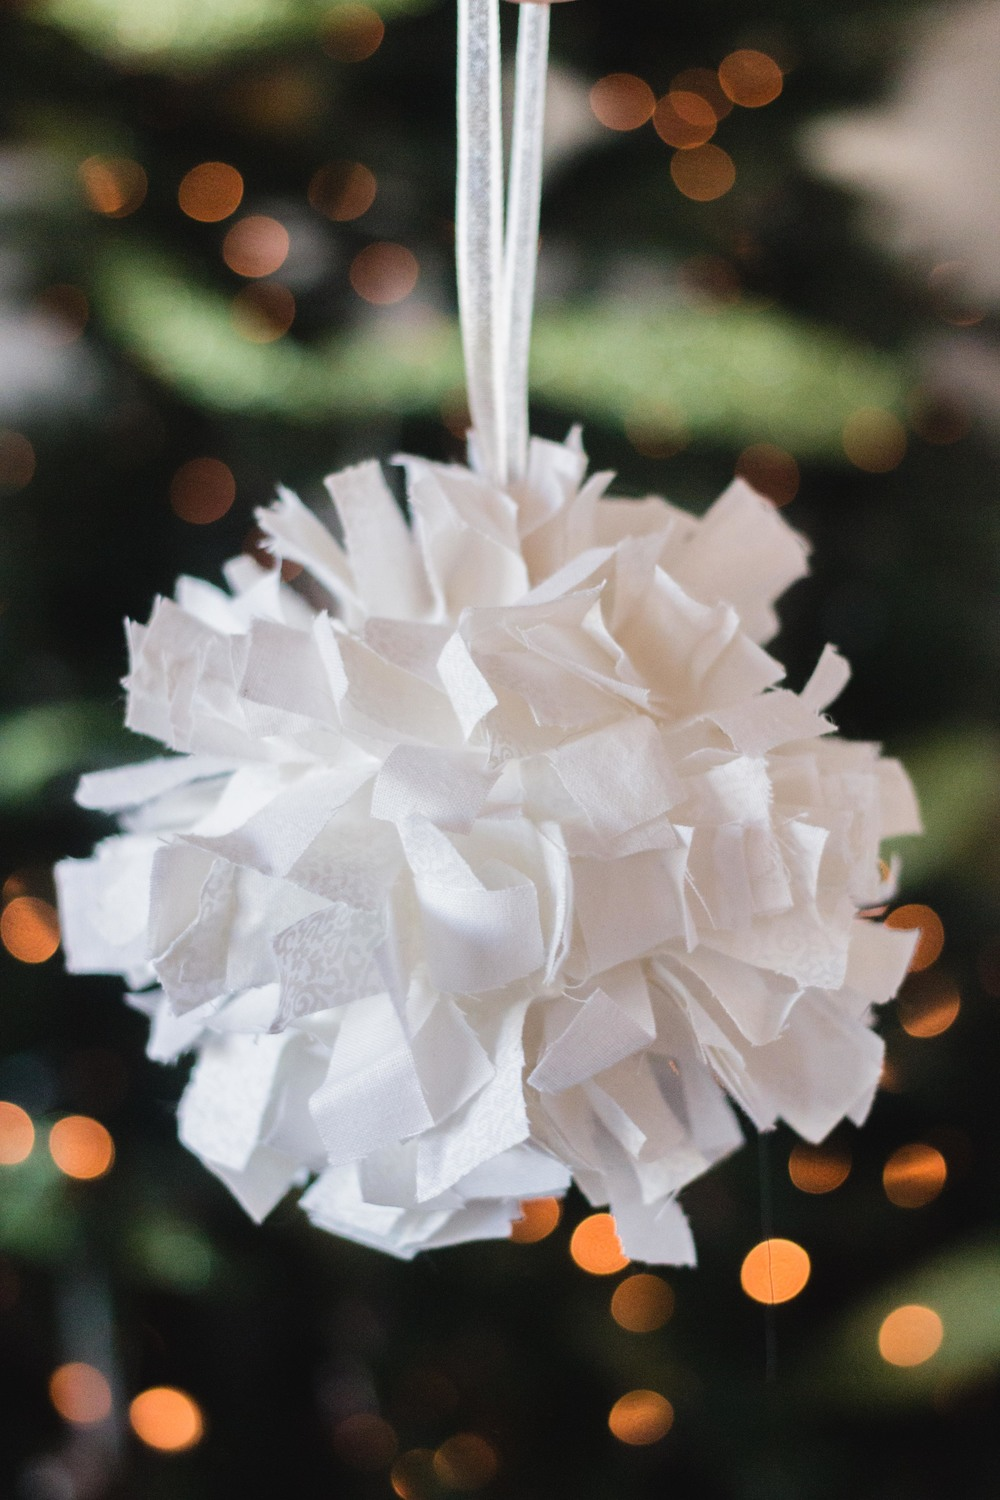 Pinecone Holiday DIY Easy Homemade Ornaments per natale styrofoam ball